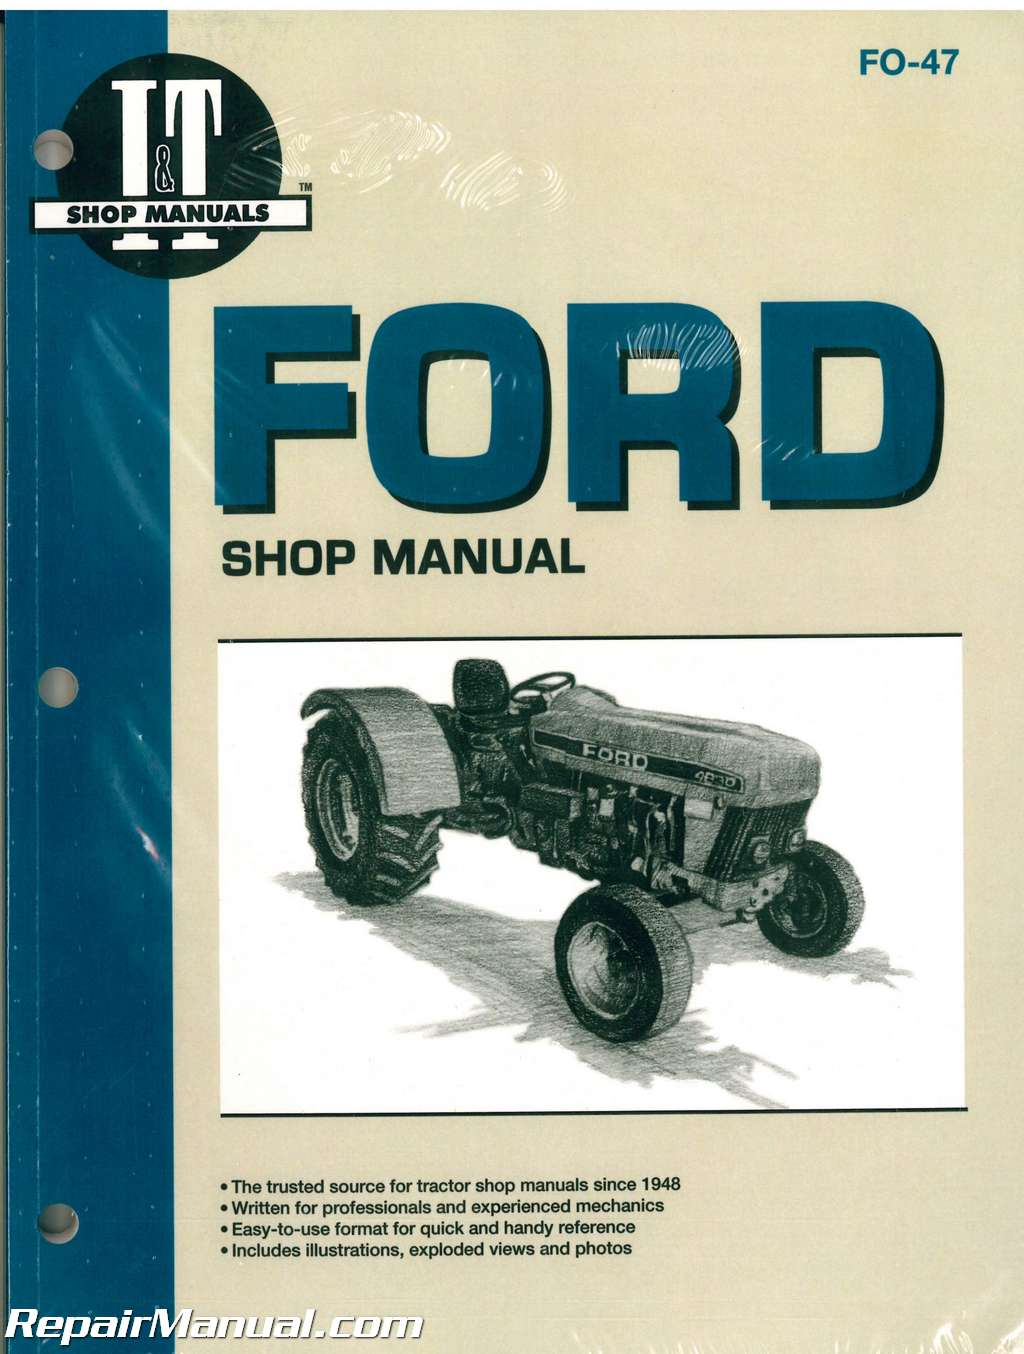 Ford 3930 Wiring Diagram from www.repairmanual.com